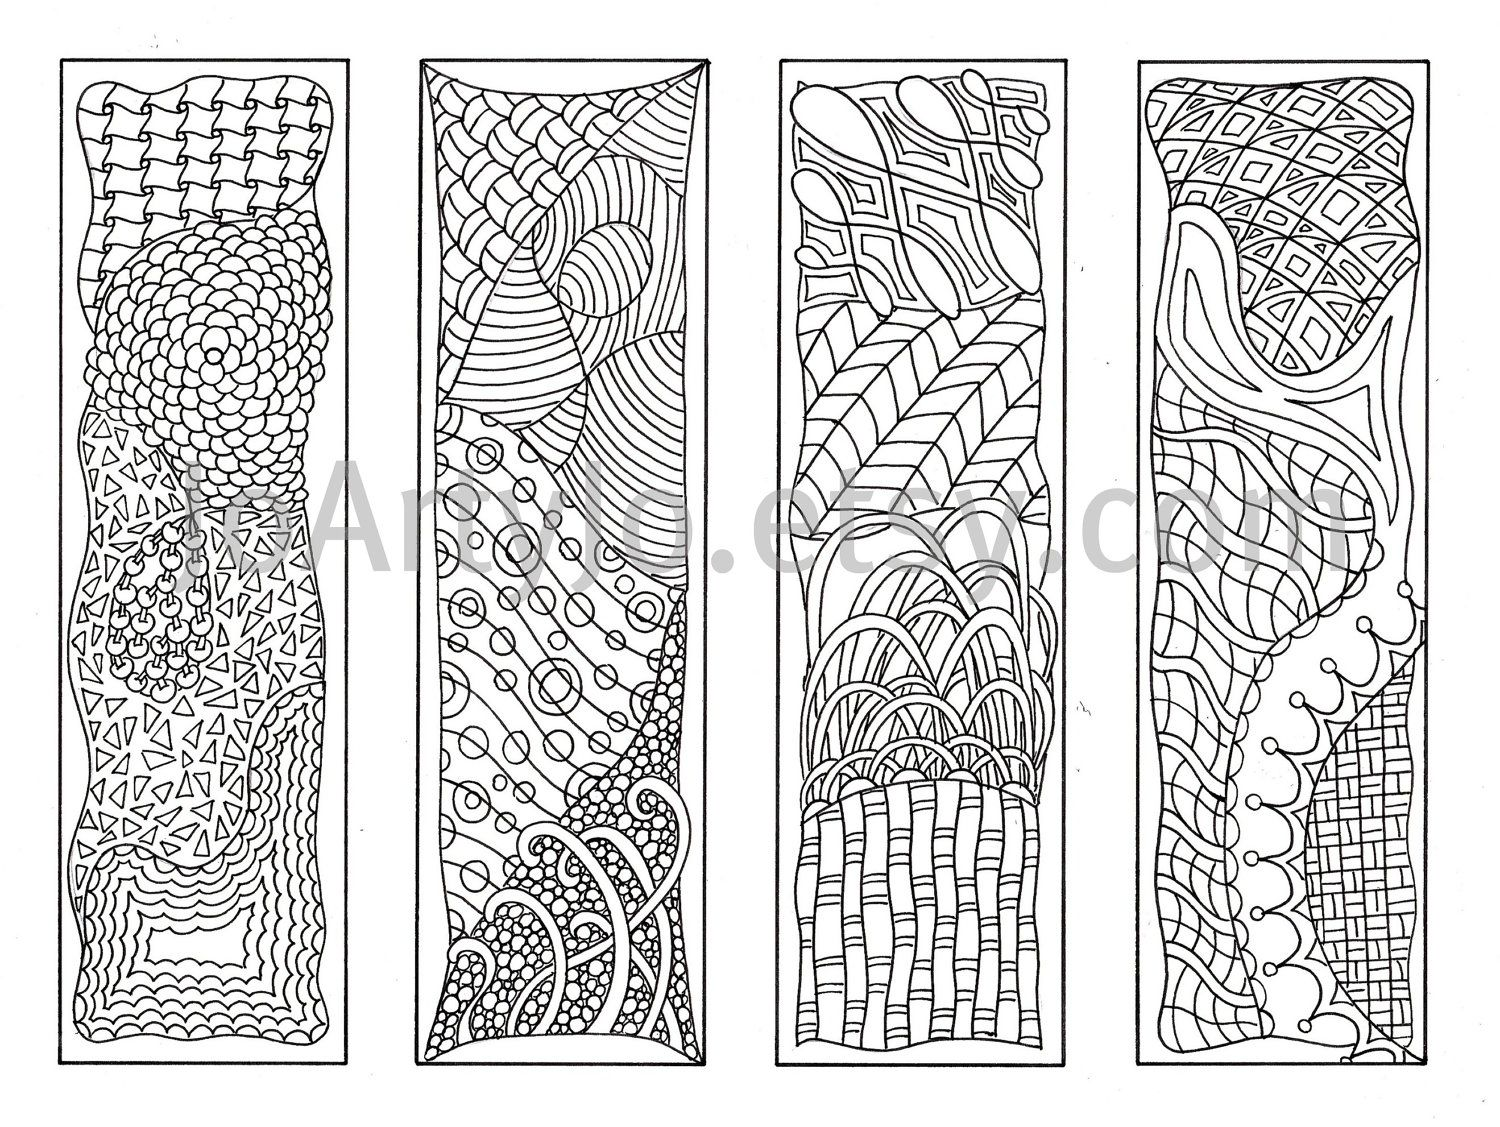 Zen doodle colour - Zentangle Inspired Printable Bookmarks To Color Zendoodle Art Digital Download Sheet 5